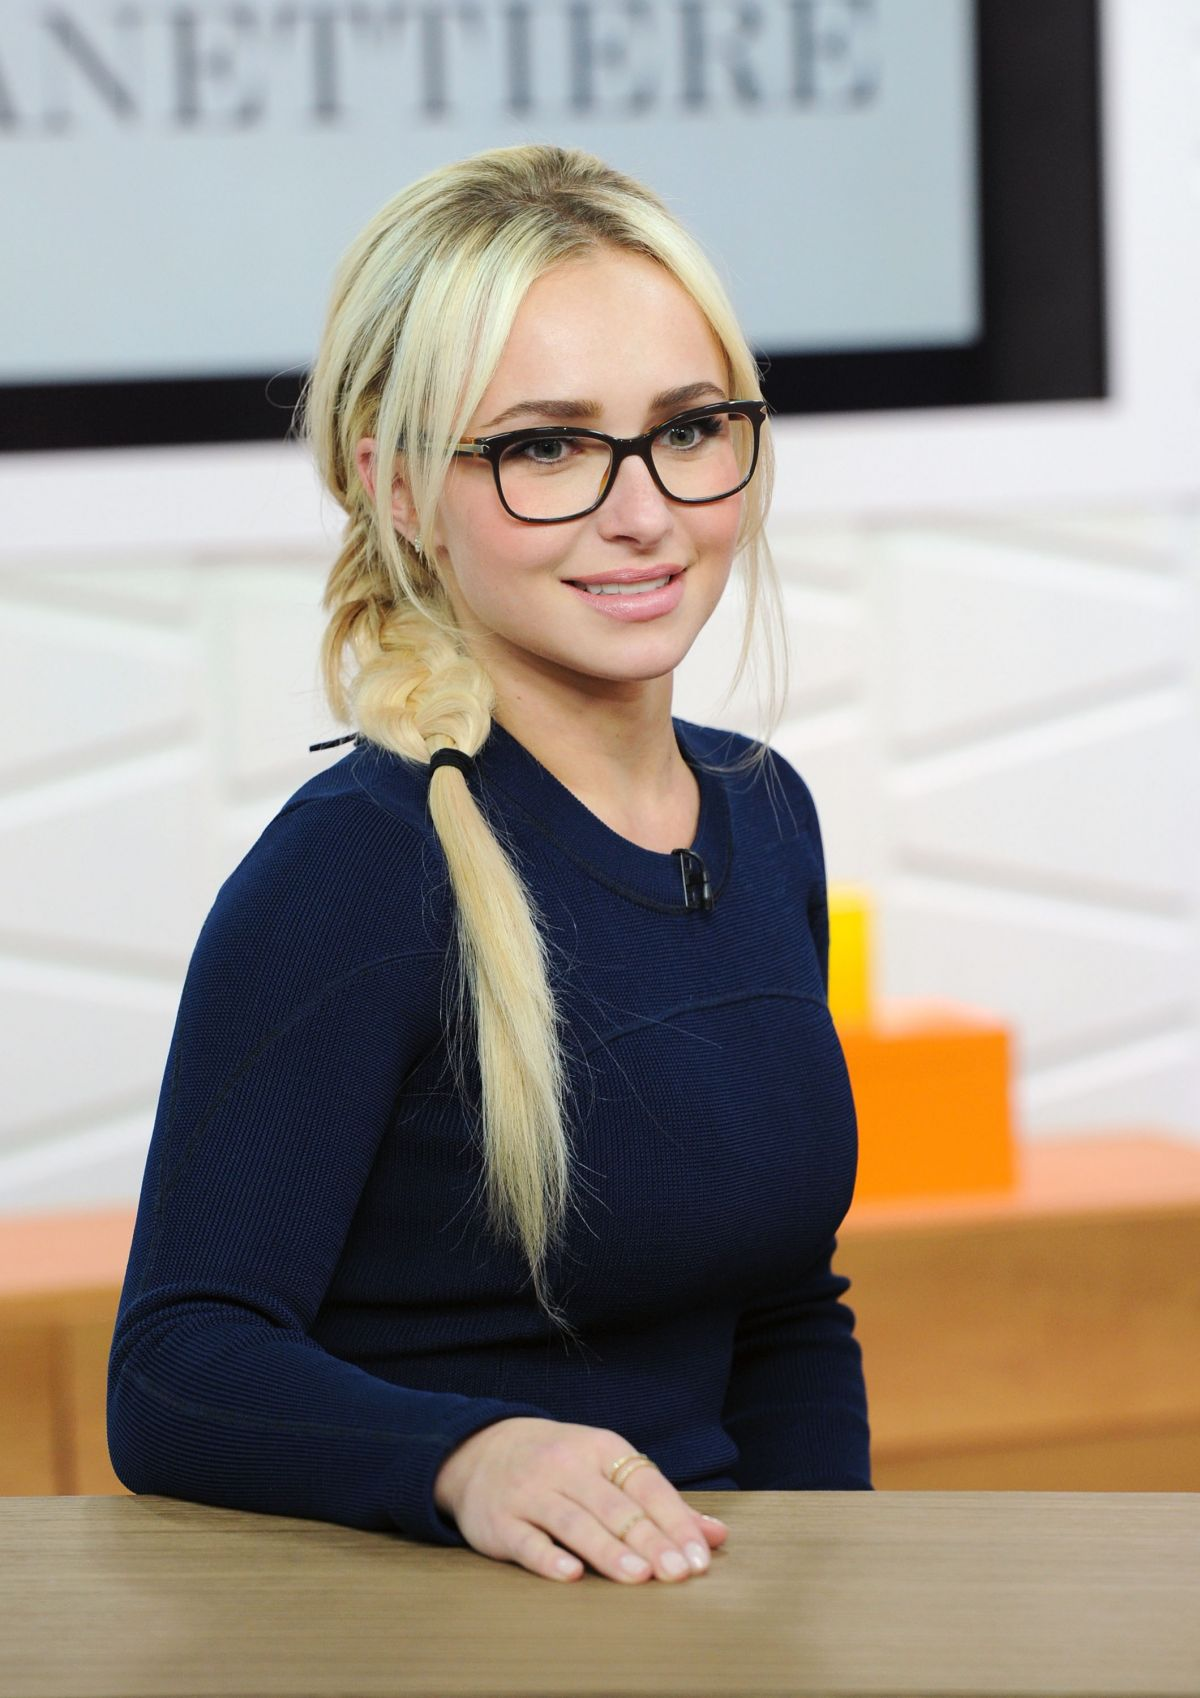 HAYDEN PANETTIERE on A... Hayden Panettiere